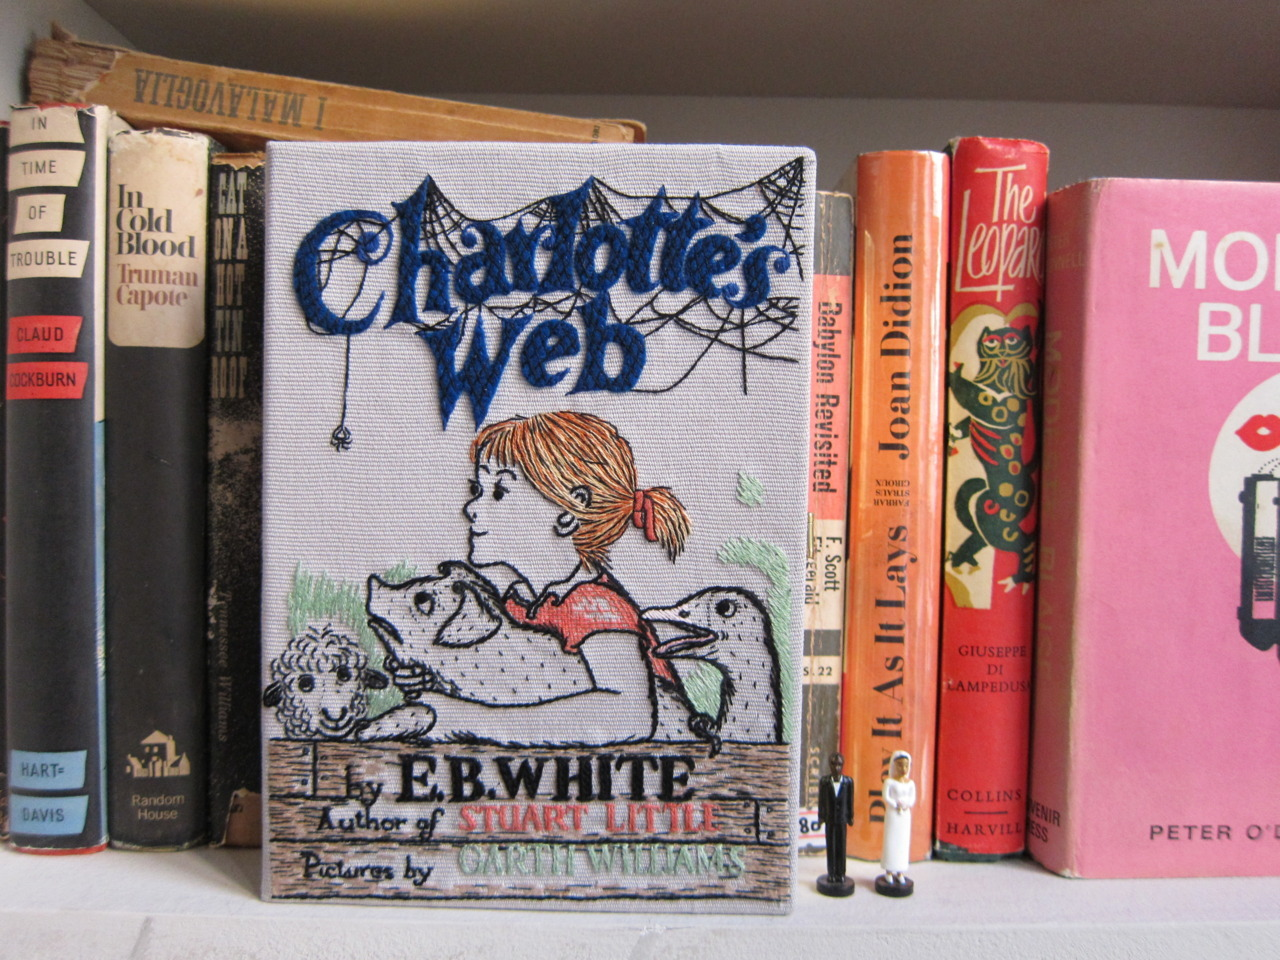 Charlotte's Web book-clutch by Olympia Le-Tan for Charlotte Olympia. Available soon exclusively at Charlotte Olympia.